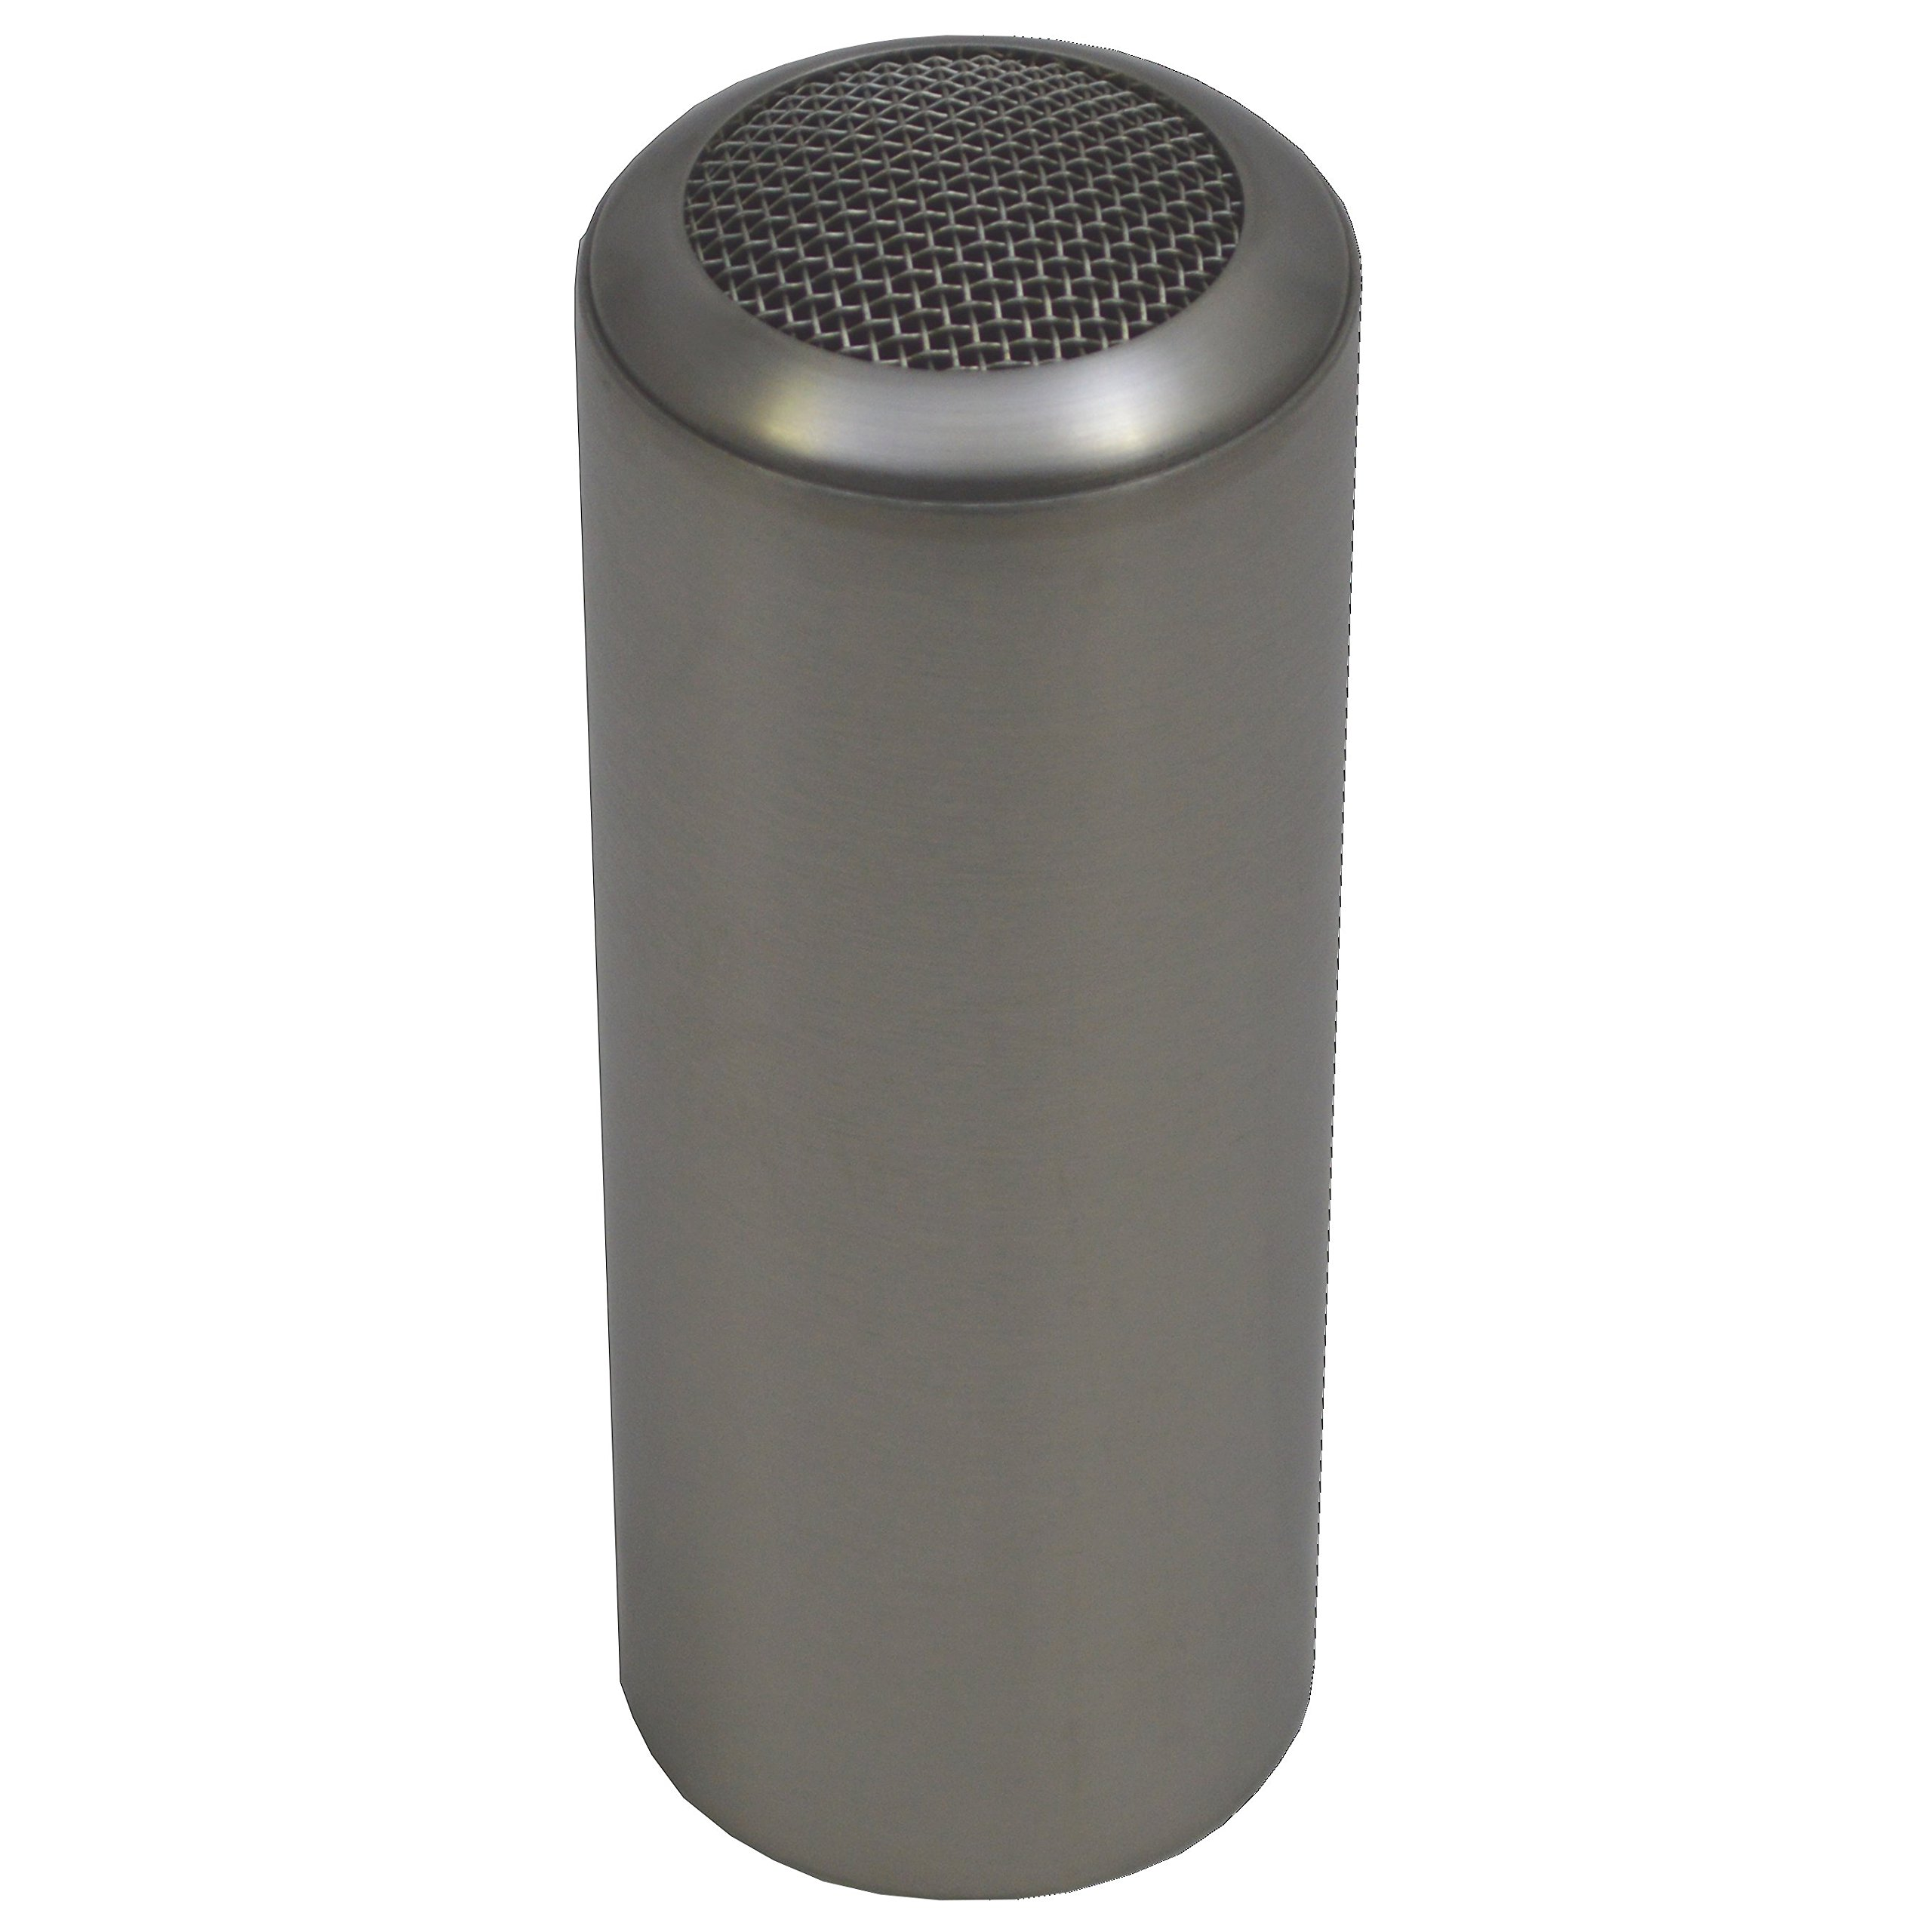 Service Ideas STCMESH Condiment Shaker, Mesh Top, Stainless Steel